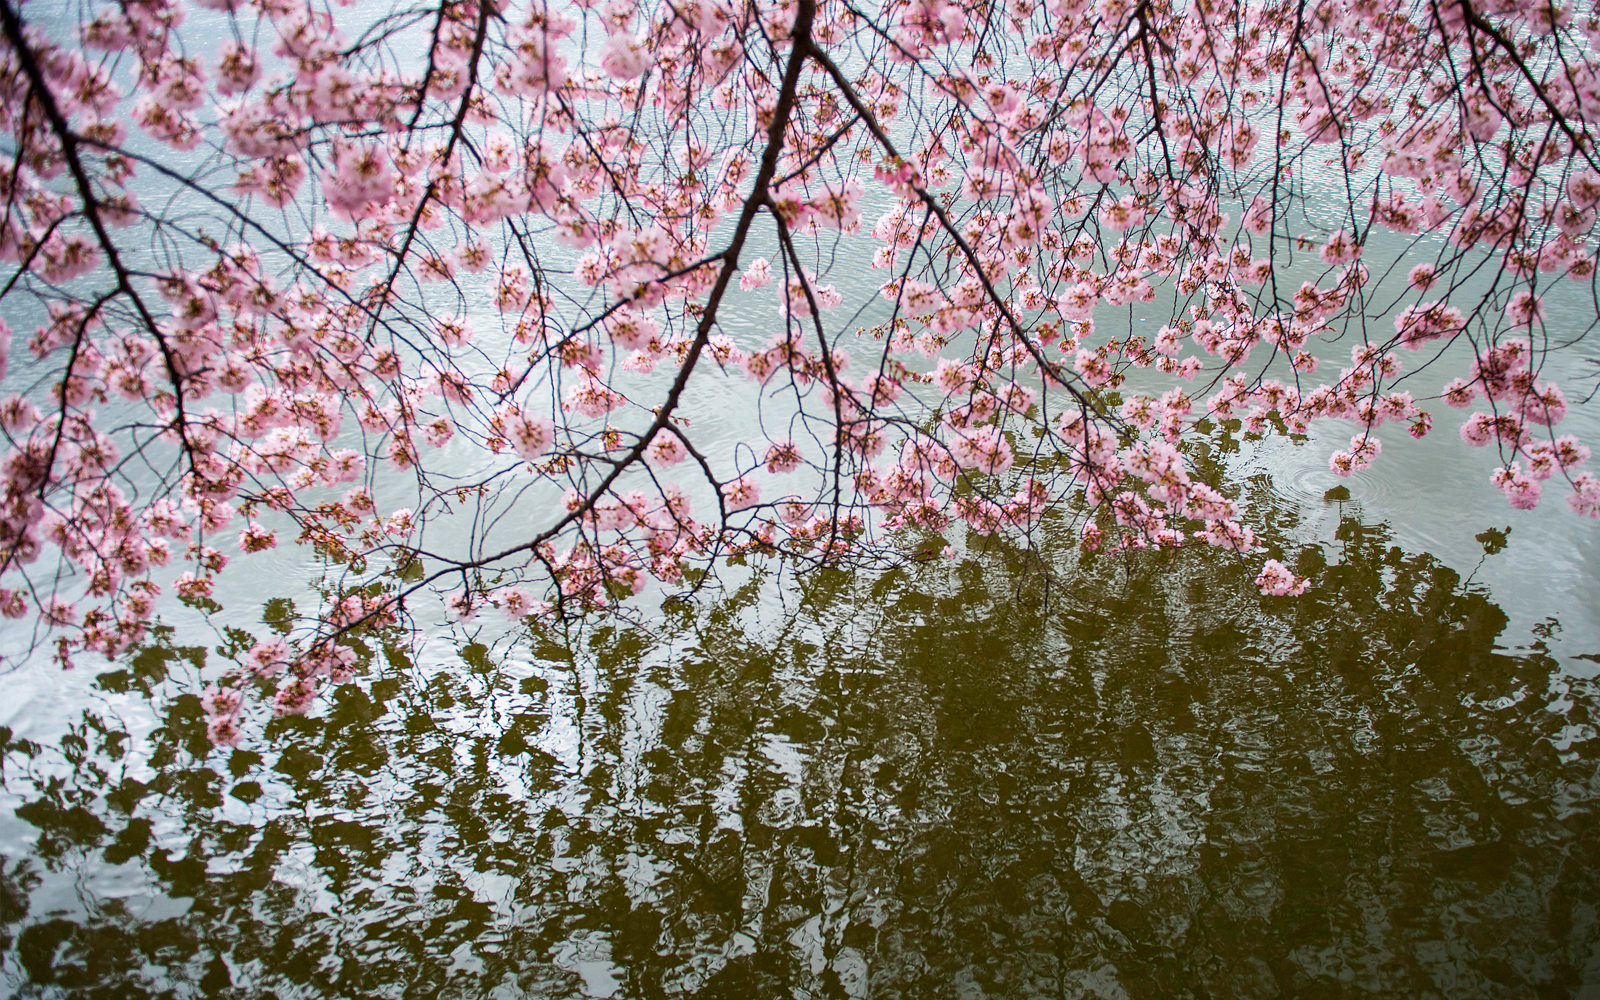 Cherry blossom trees dip into the tidal basin as they stand in full bloom in Washington, DC, on April 4, 2018.